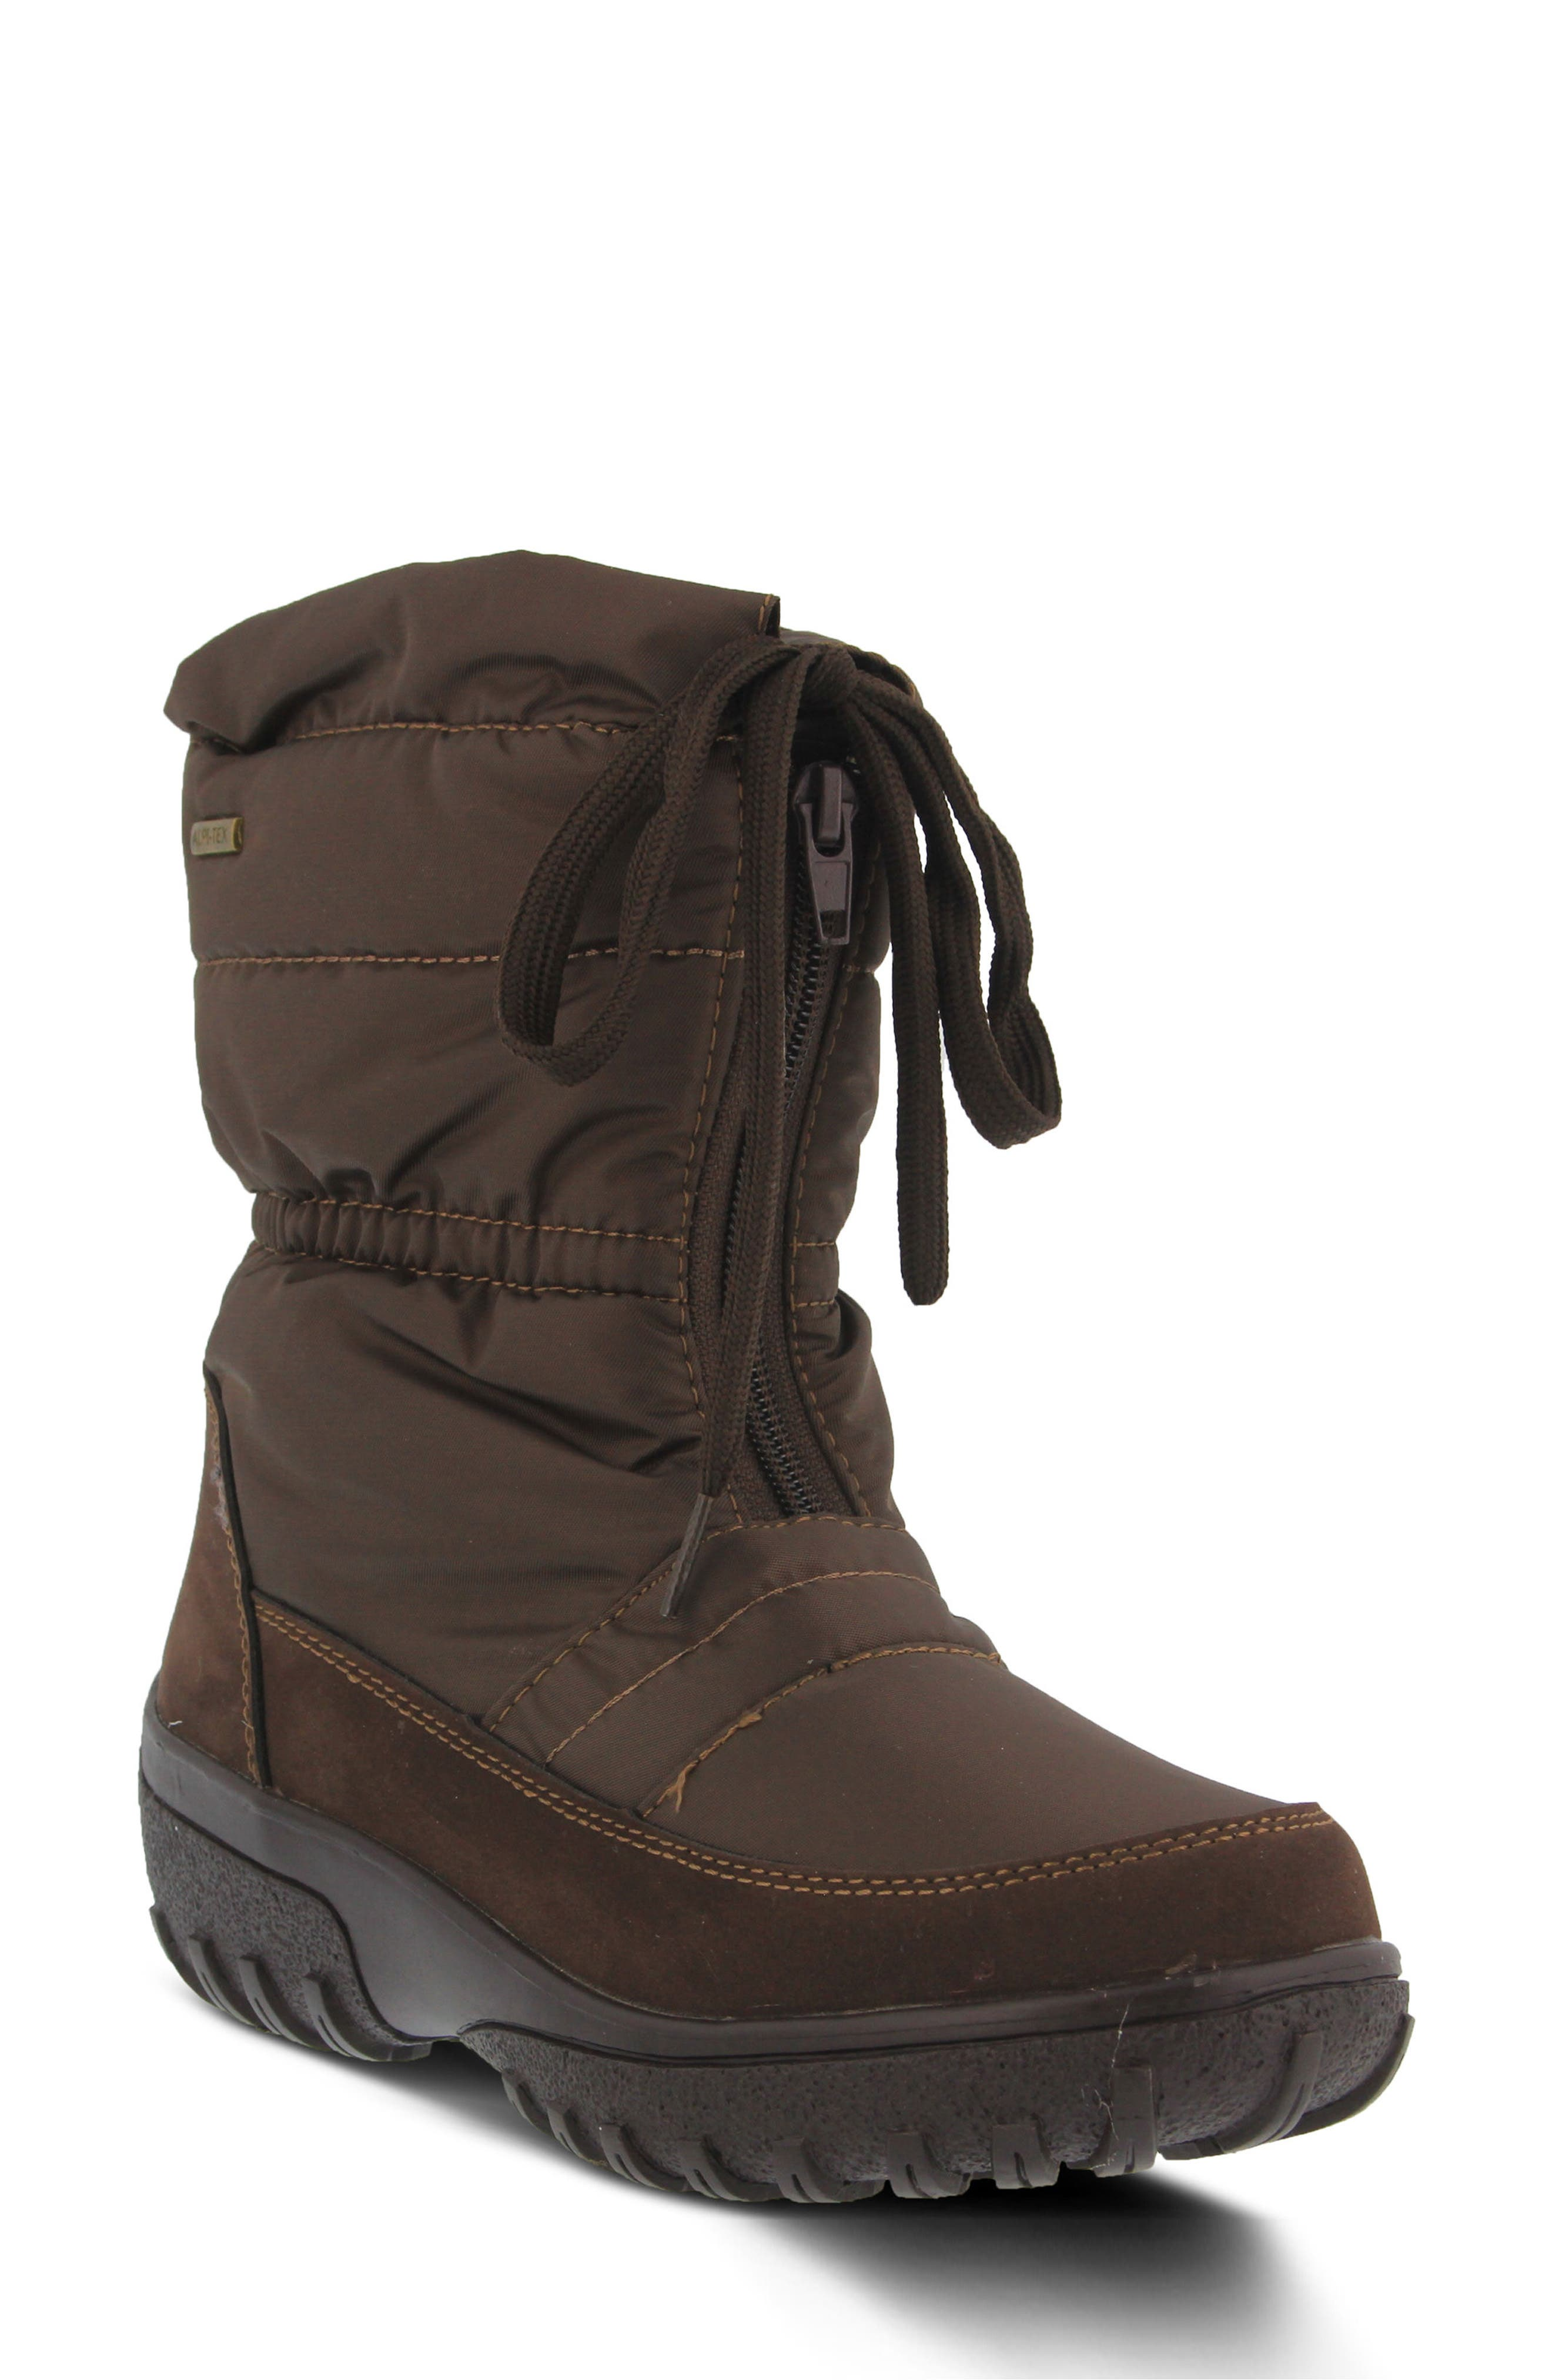 Lucerne Waterproof Drawstring Boot,                             Main thumbnail 1, color,                             Brown